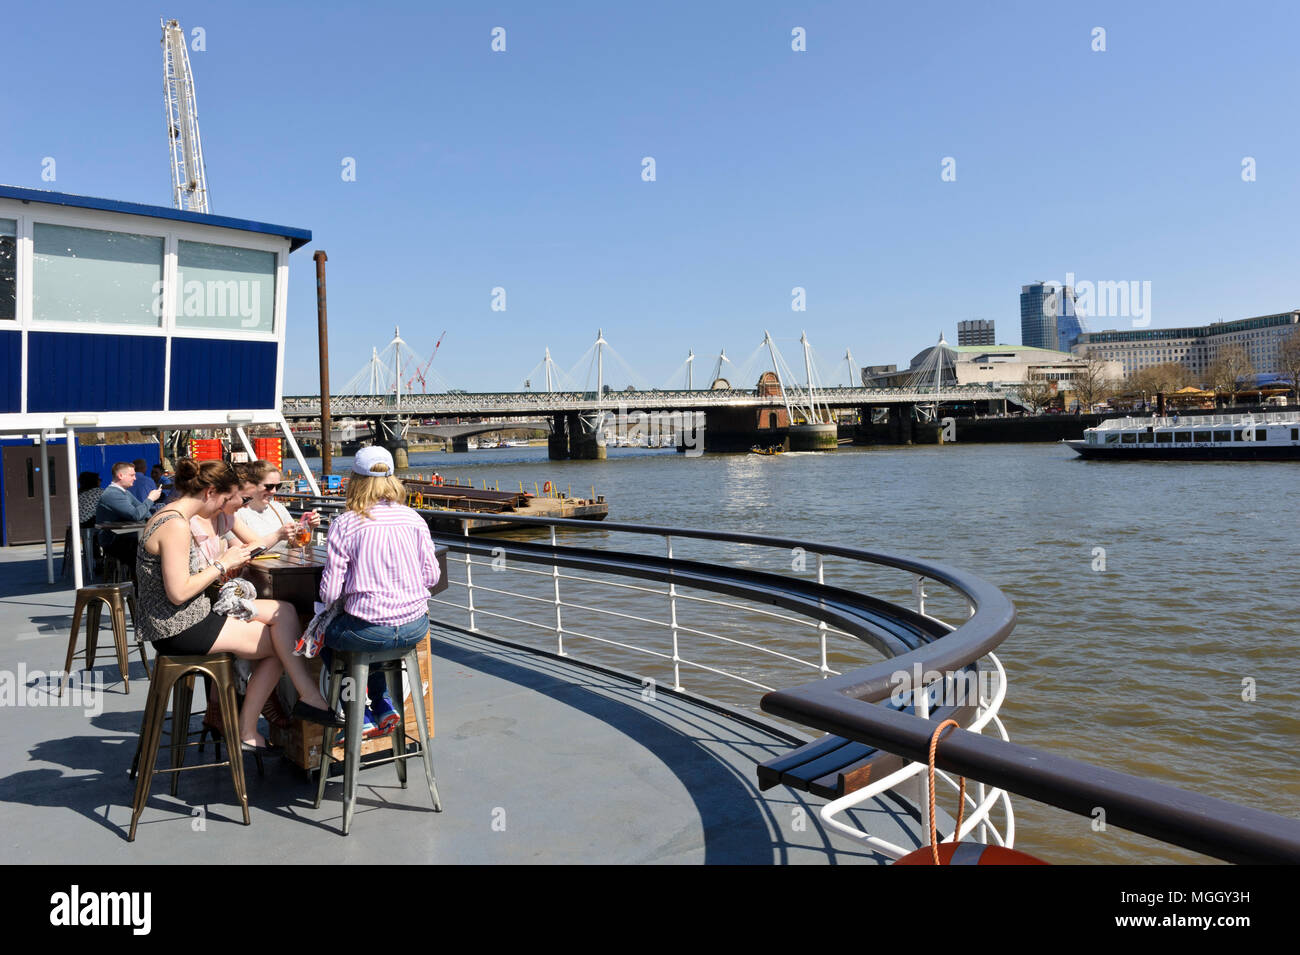 A group of people having drinks on a boat on the river Thames, London, England, United Kingdom Stock Photo